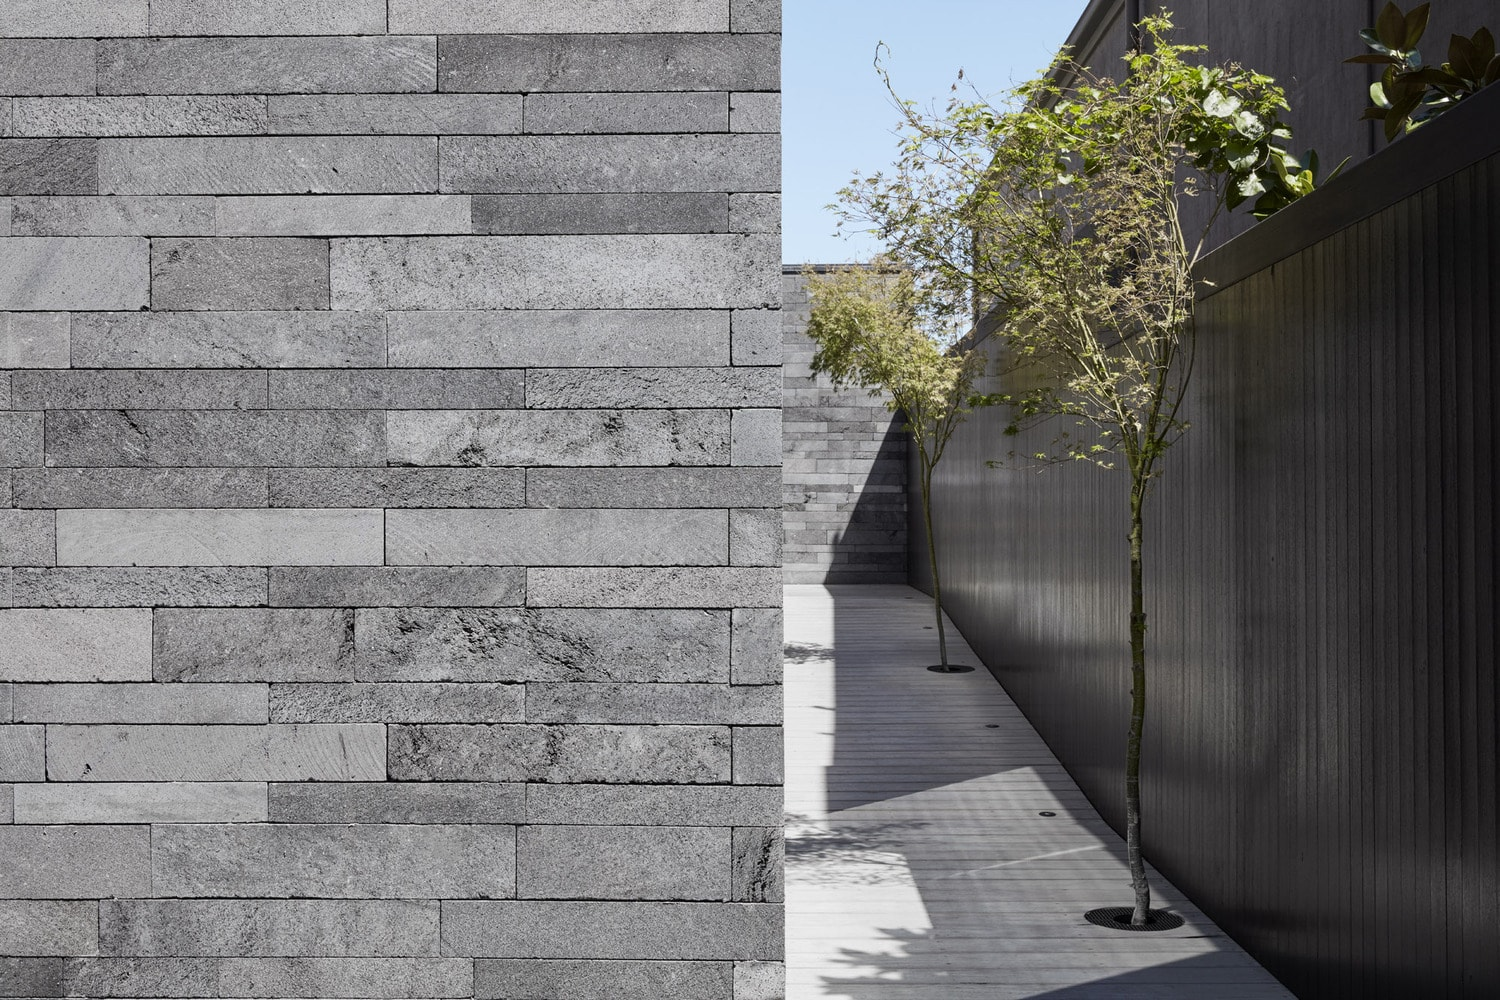 Norstone Planc in a custom platinum blend used on the exterior walls of an urban outdoor space.